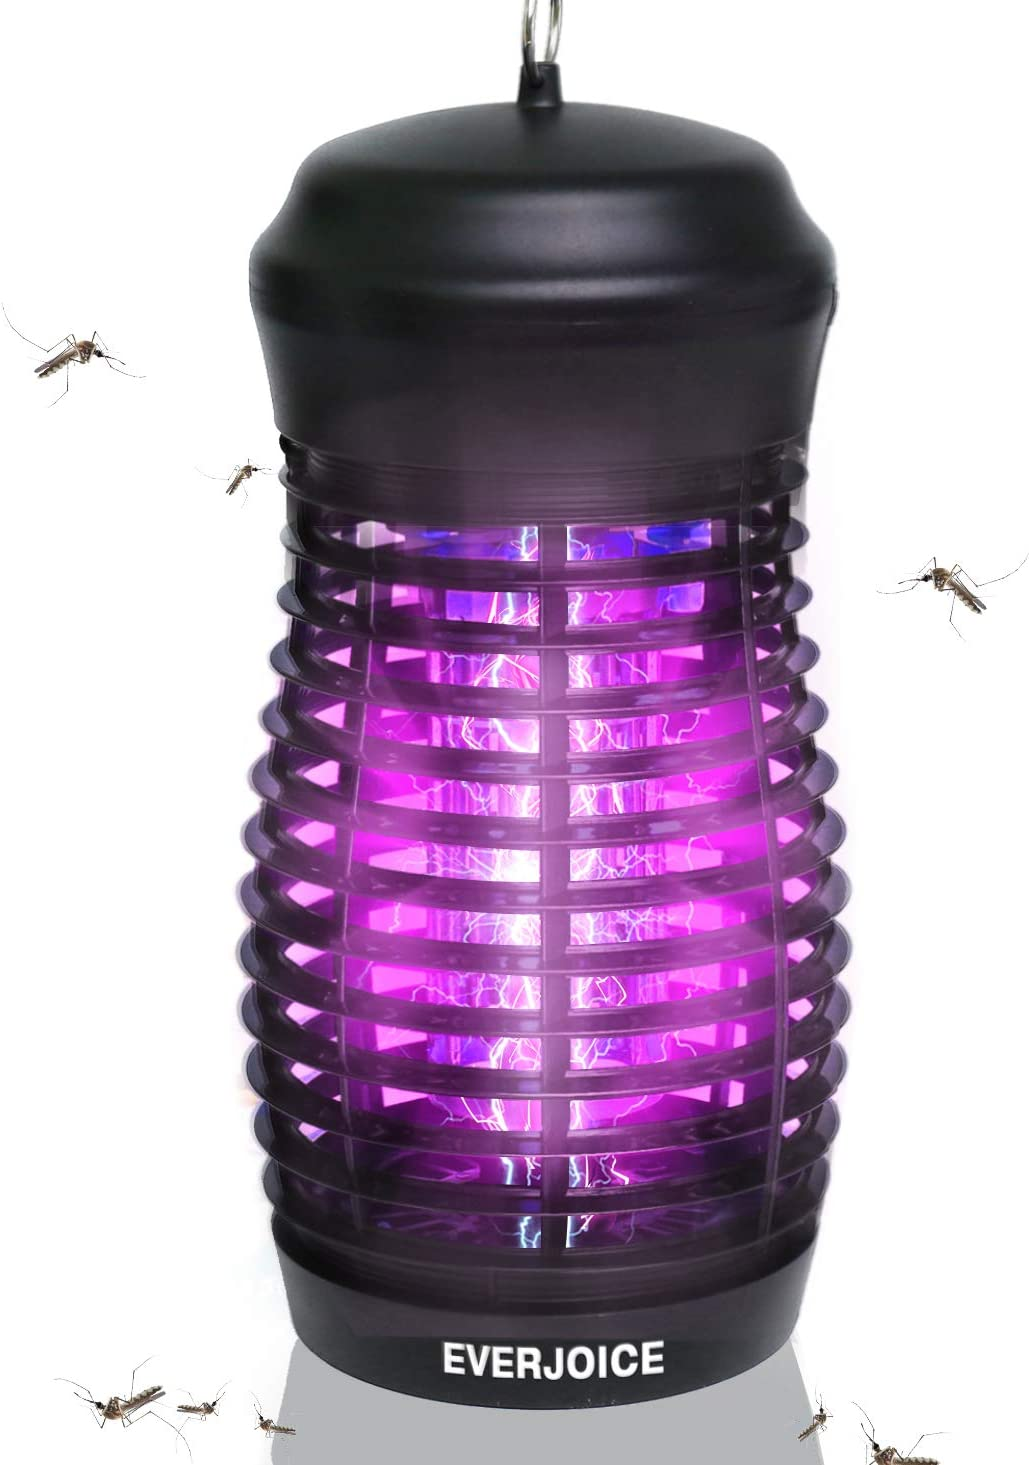 EverJoice 2020 Bug Zapper Electronic Mosquito Killer,Insect Trap Outdoor,Insect Killer Waterproof Indoor Outdoor,High Powered Electric,Hangable for Backyard, Patio, Large